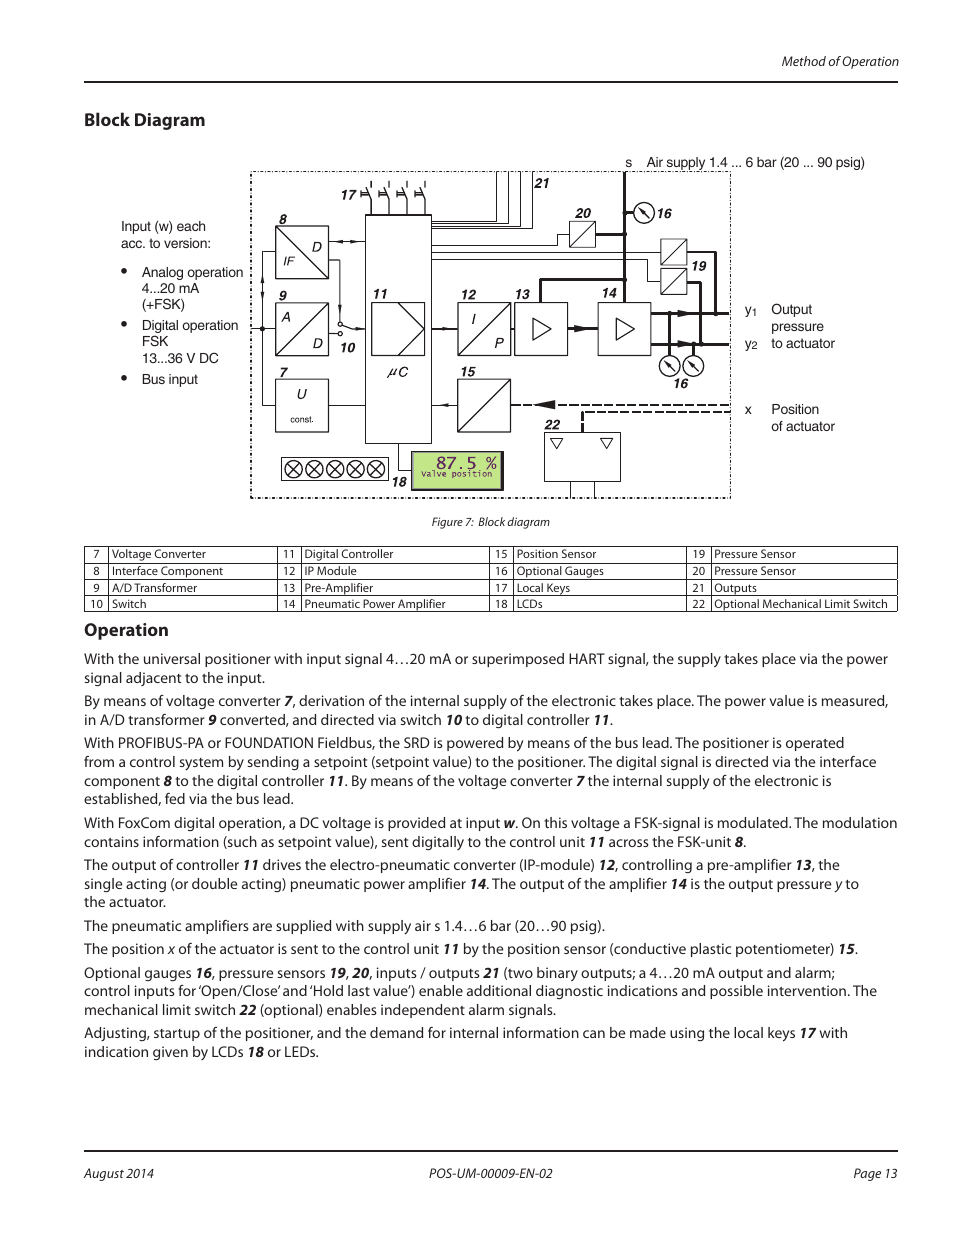 hight resolution of block diagram operation block diagram 13 operation 13 badger meter srd sri valve positioners user manual page 13 72